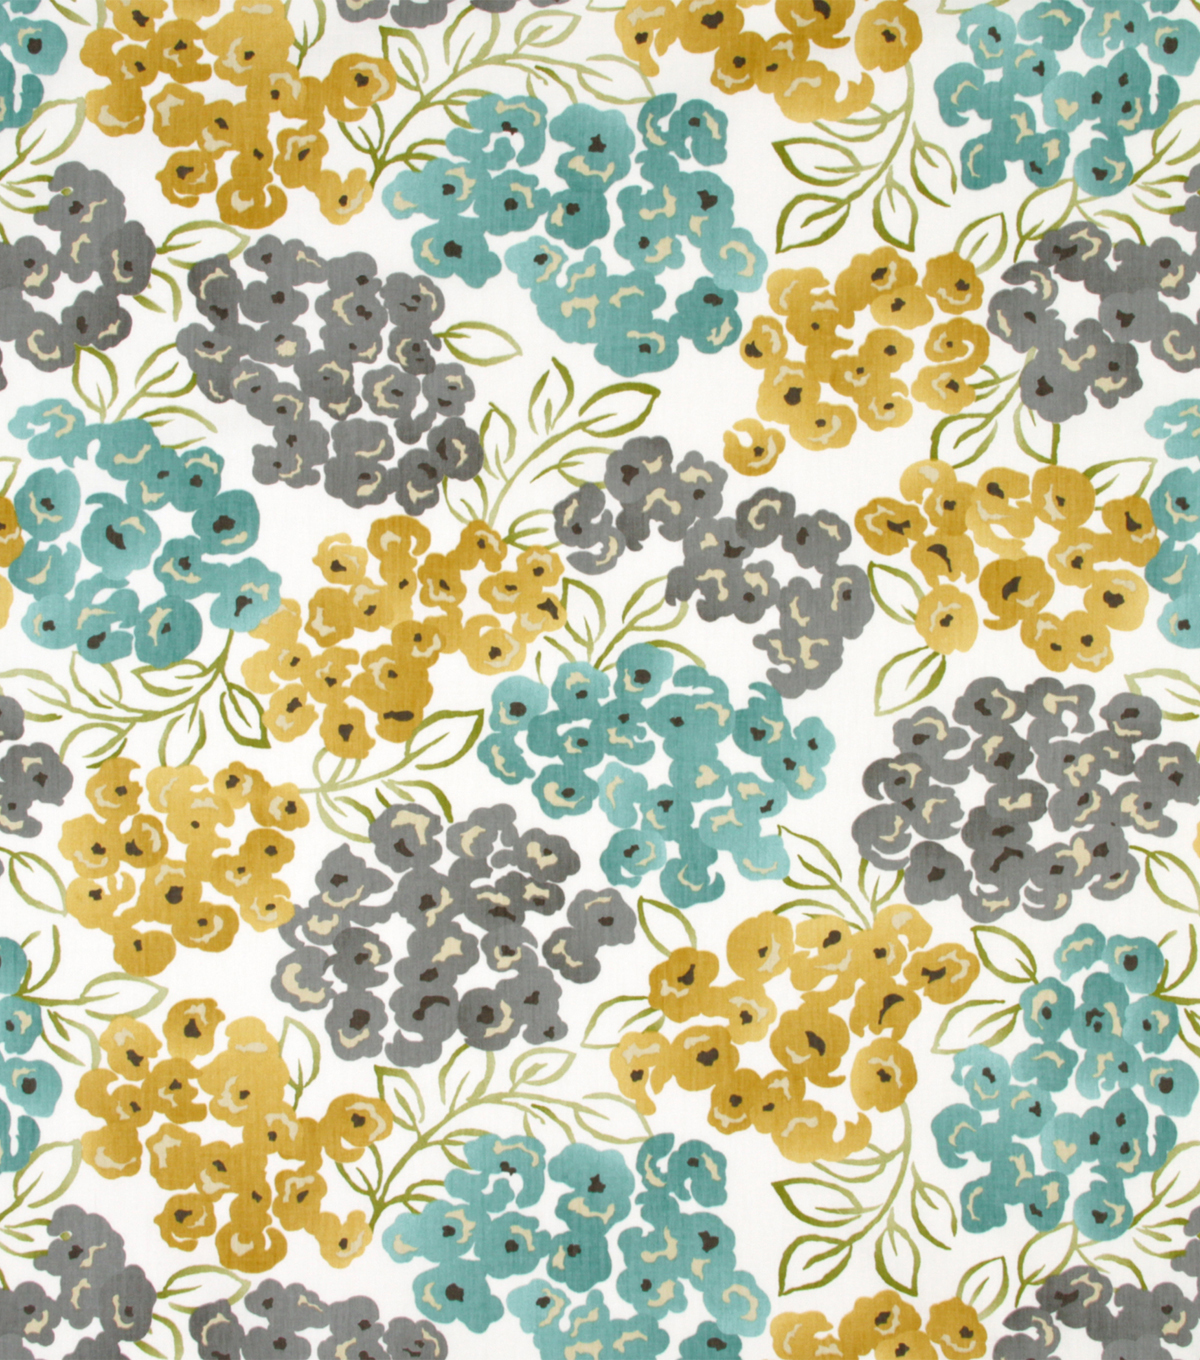 Home Decor Print Fabric Robert Allen at Home Best Floral Pool JOANN